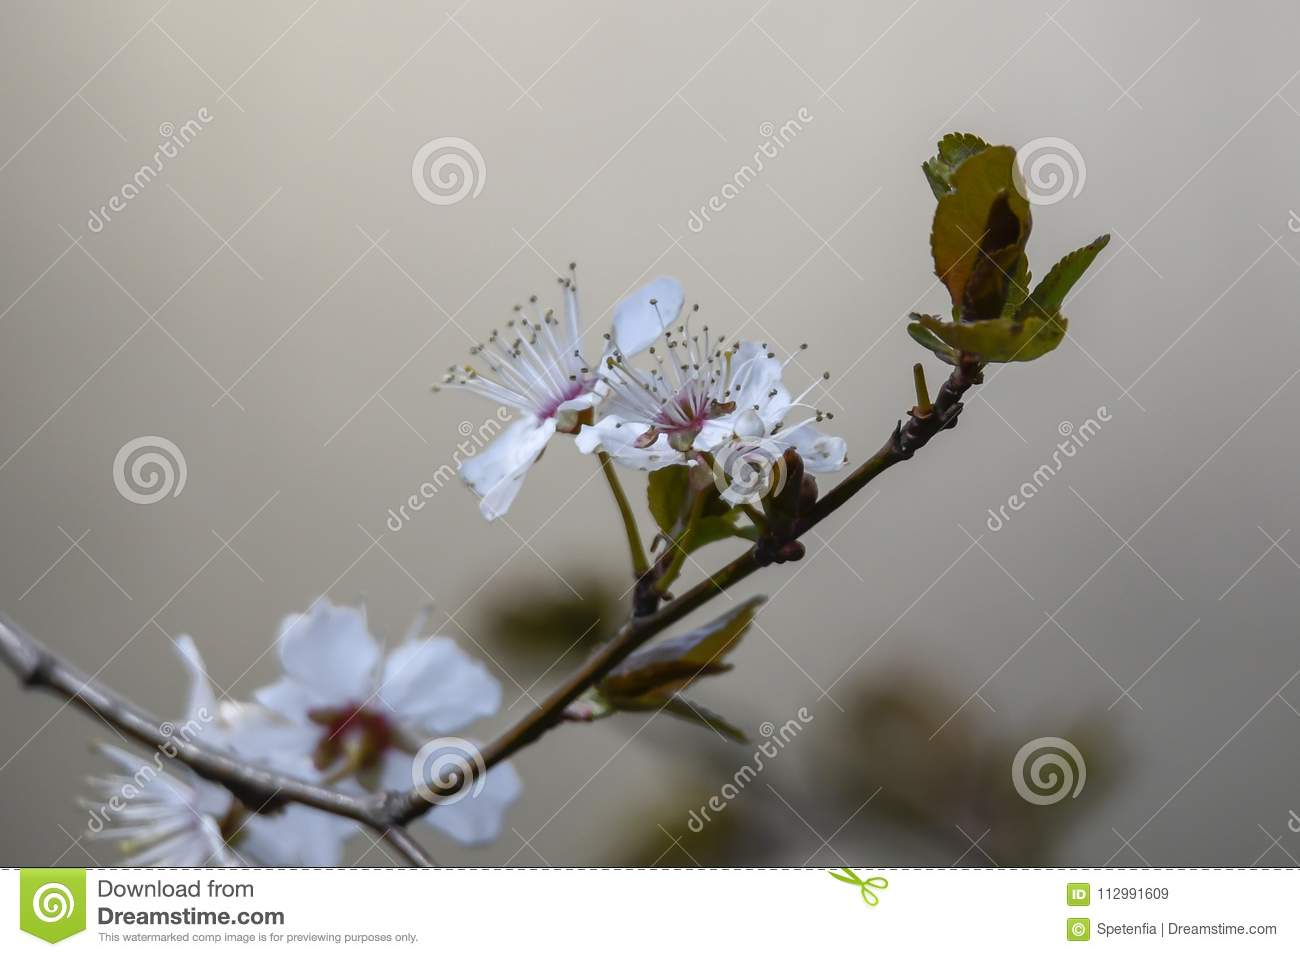 White flower on the tree in spring